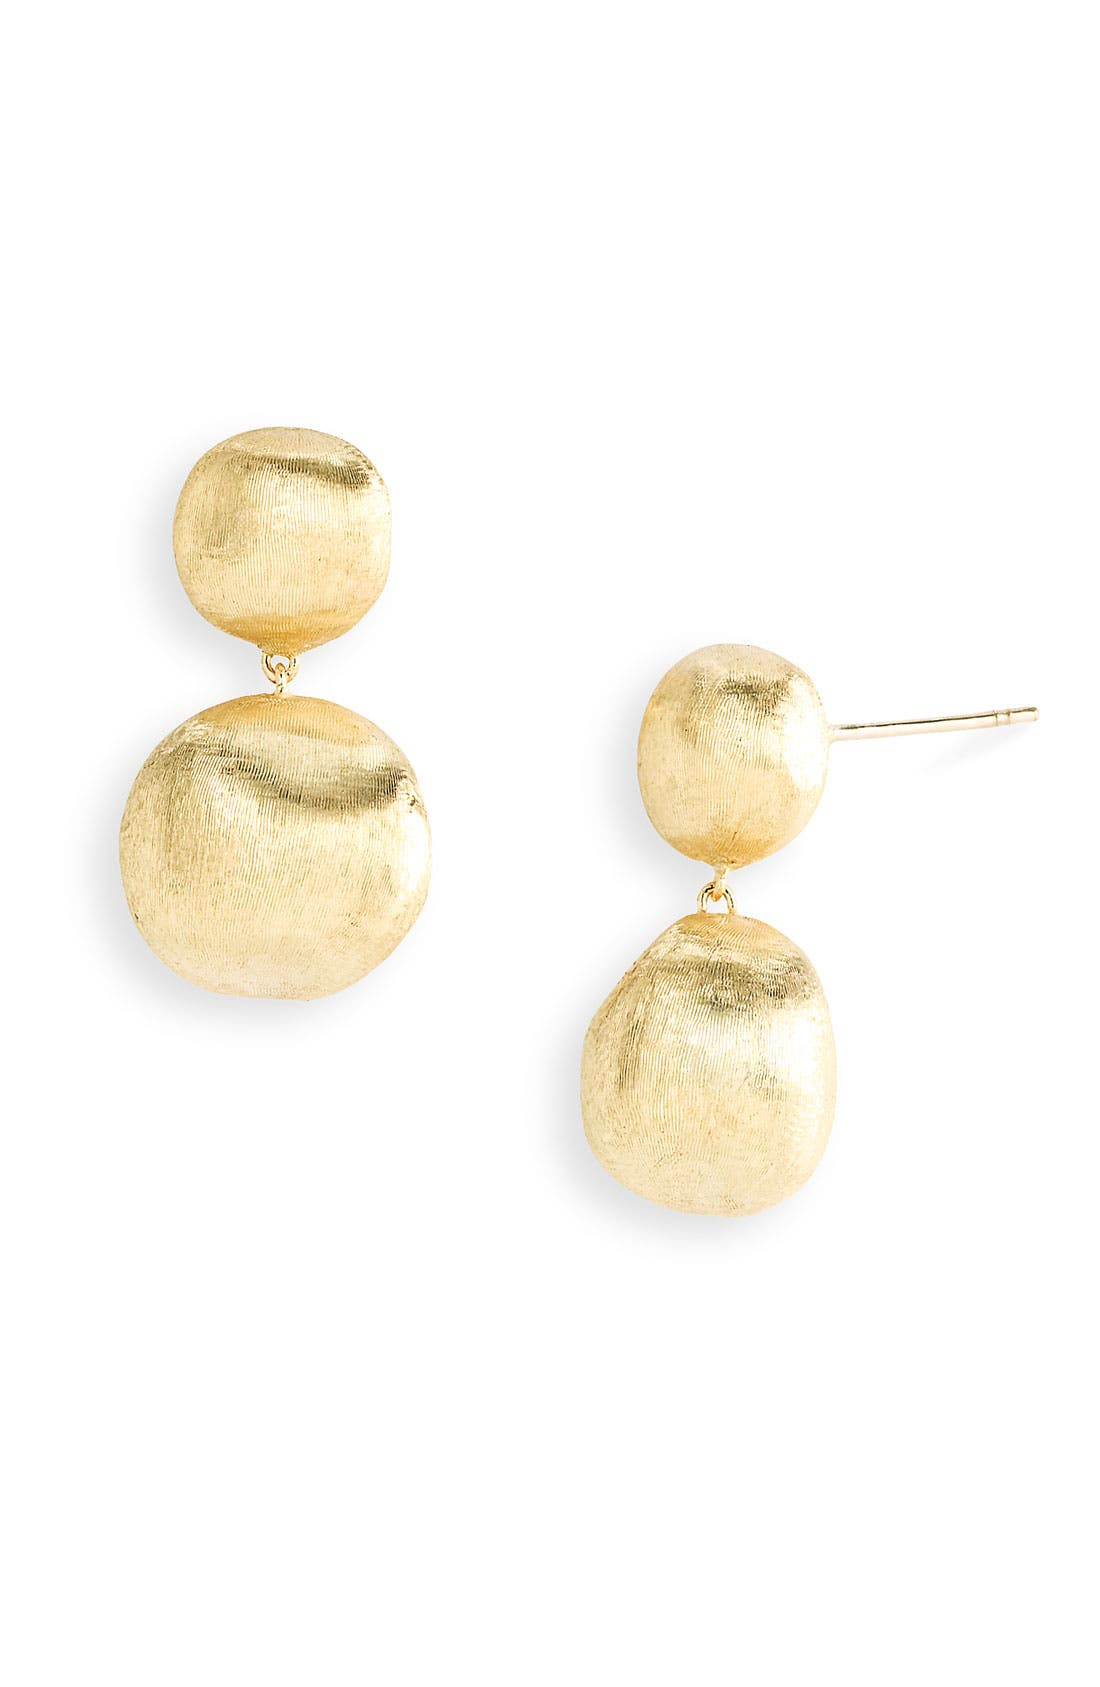 Alternate Image 1 Selected - Marco Bicego 'Africa Gold' Double Drop Earrings